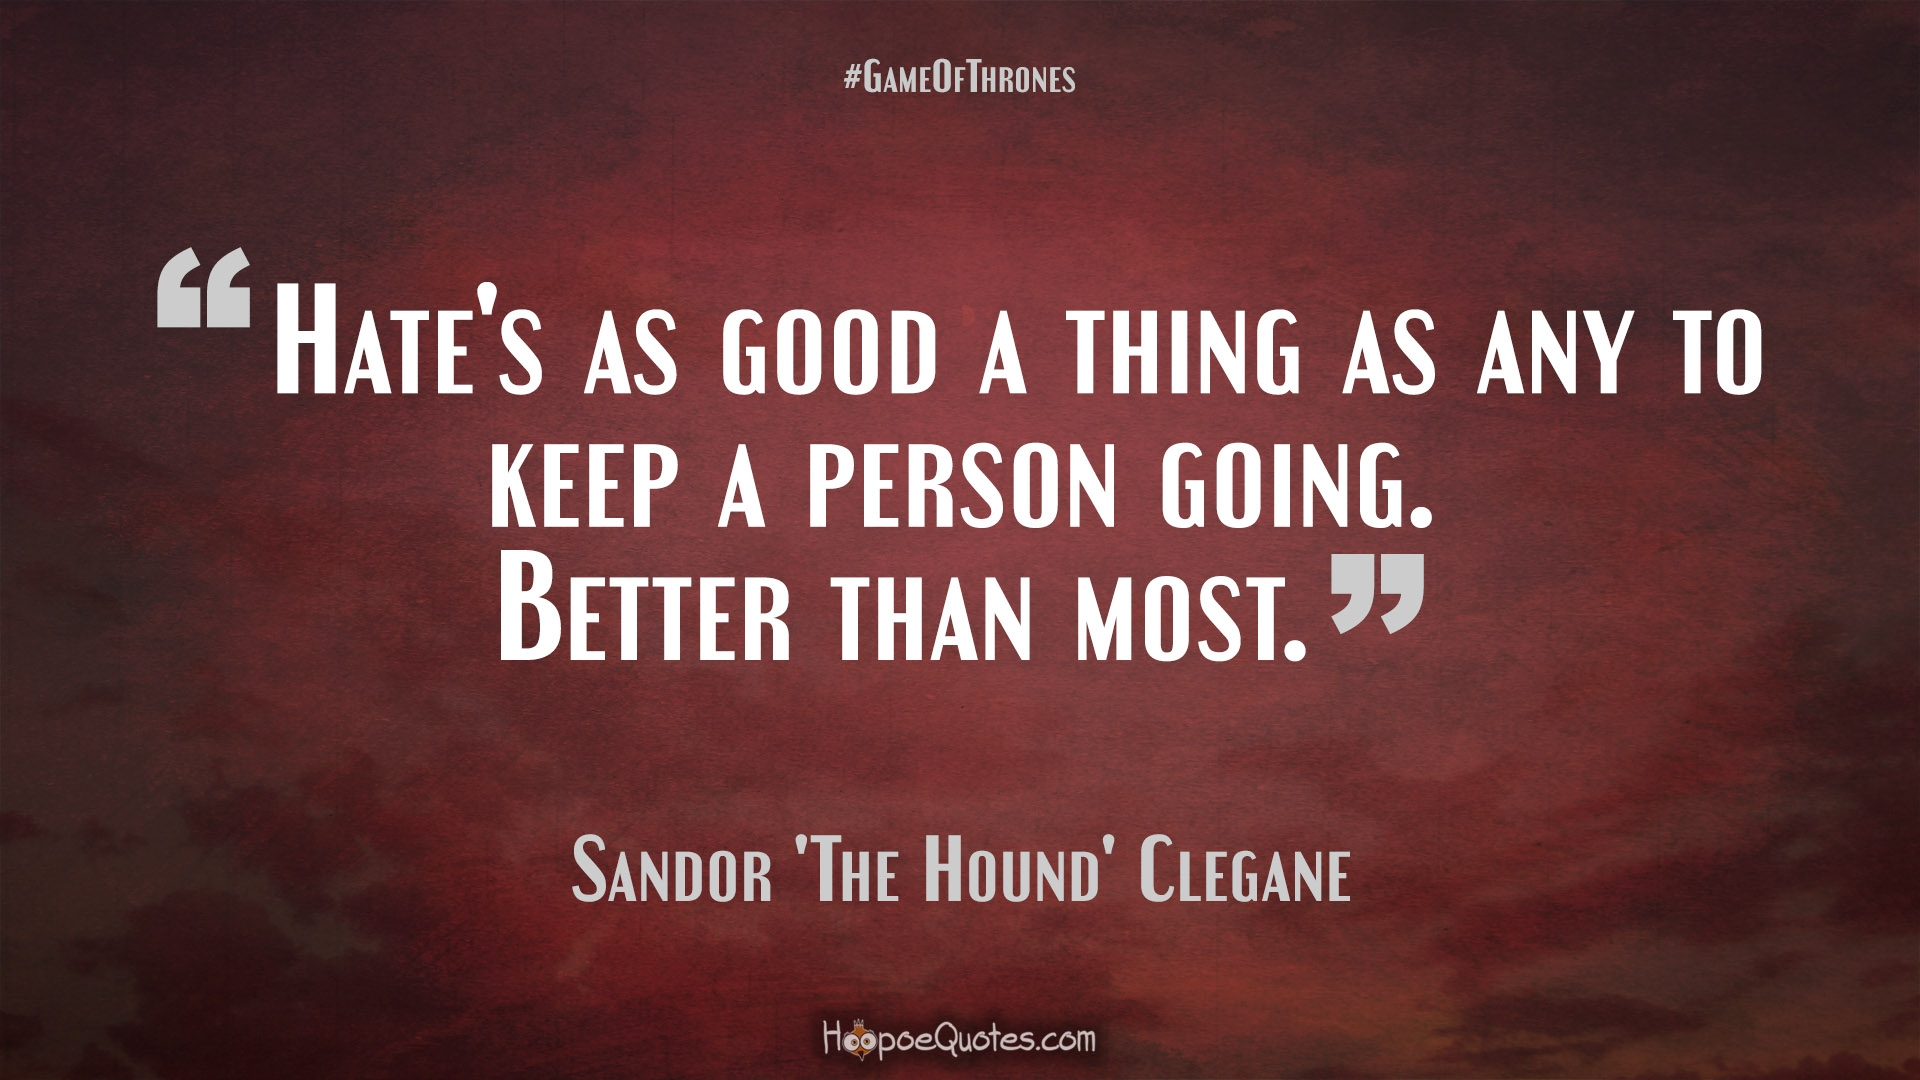 Good Person Quotes Hate's As Good A Thing As Any To Keep A Person Goingbetter Than